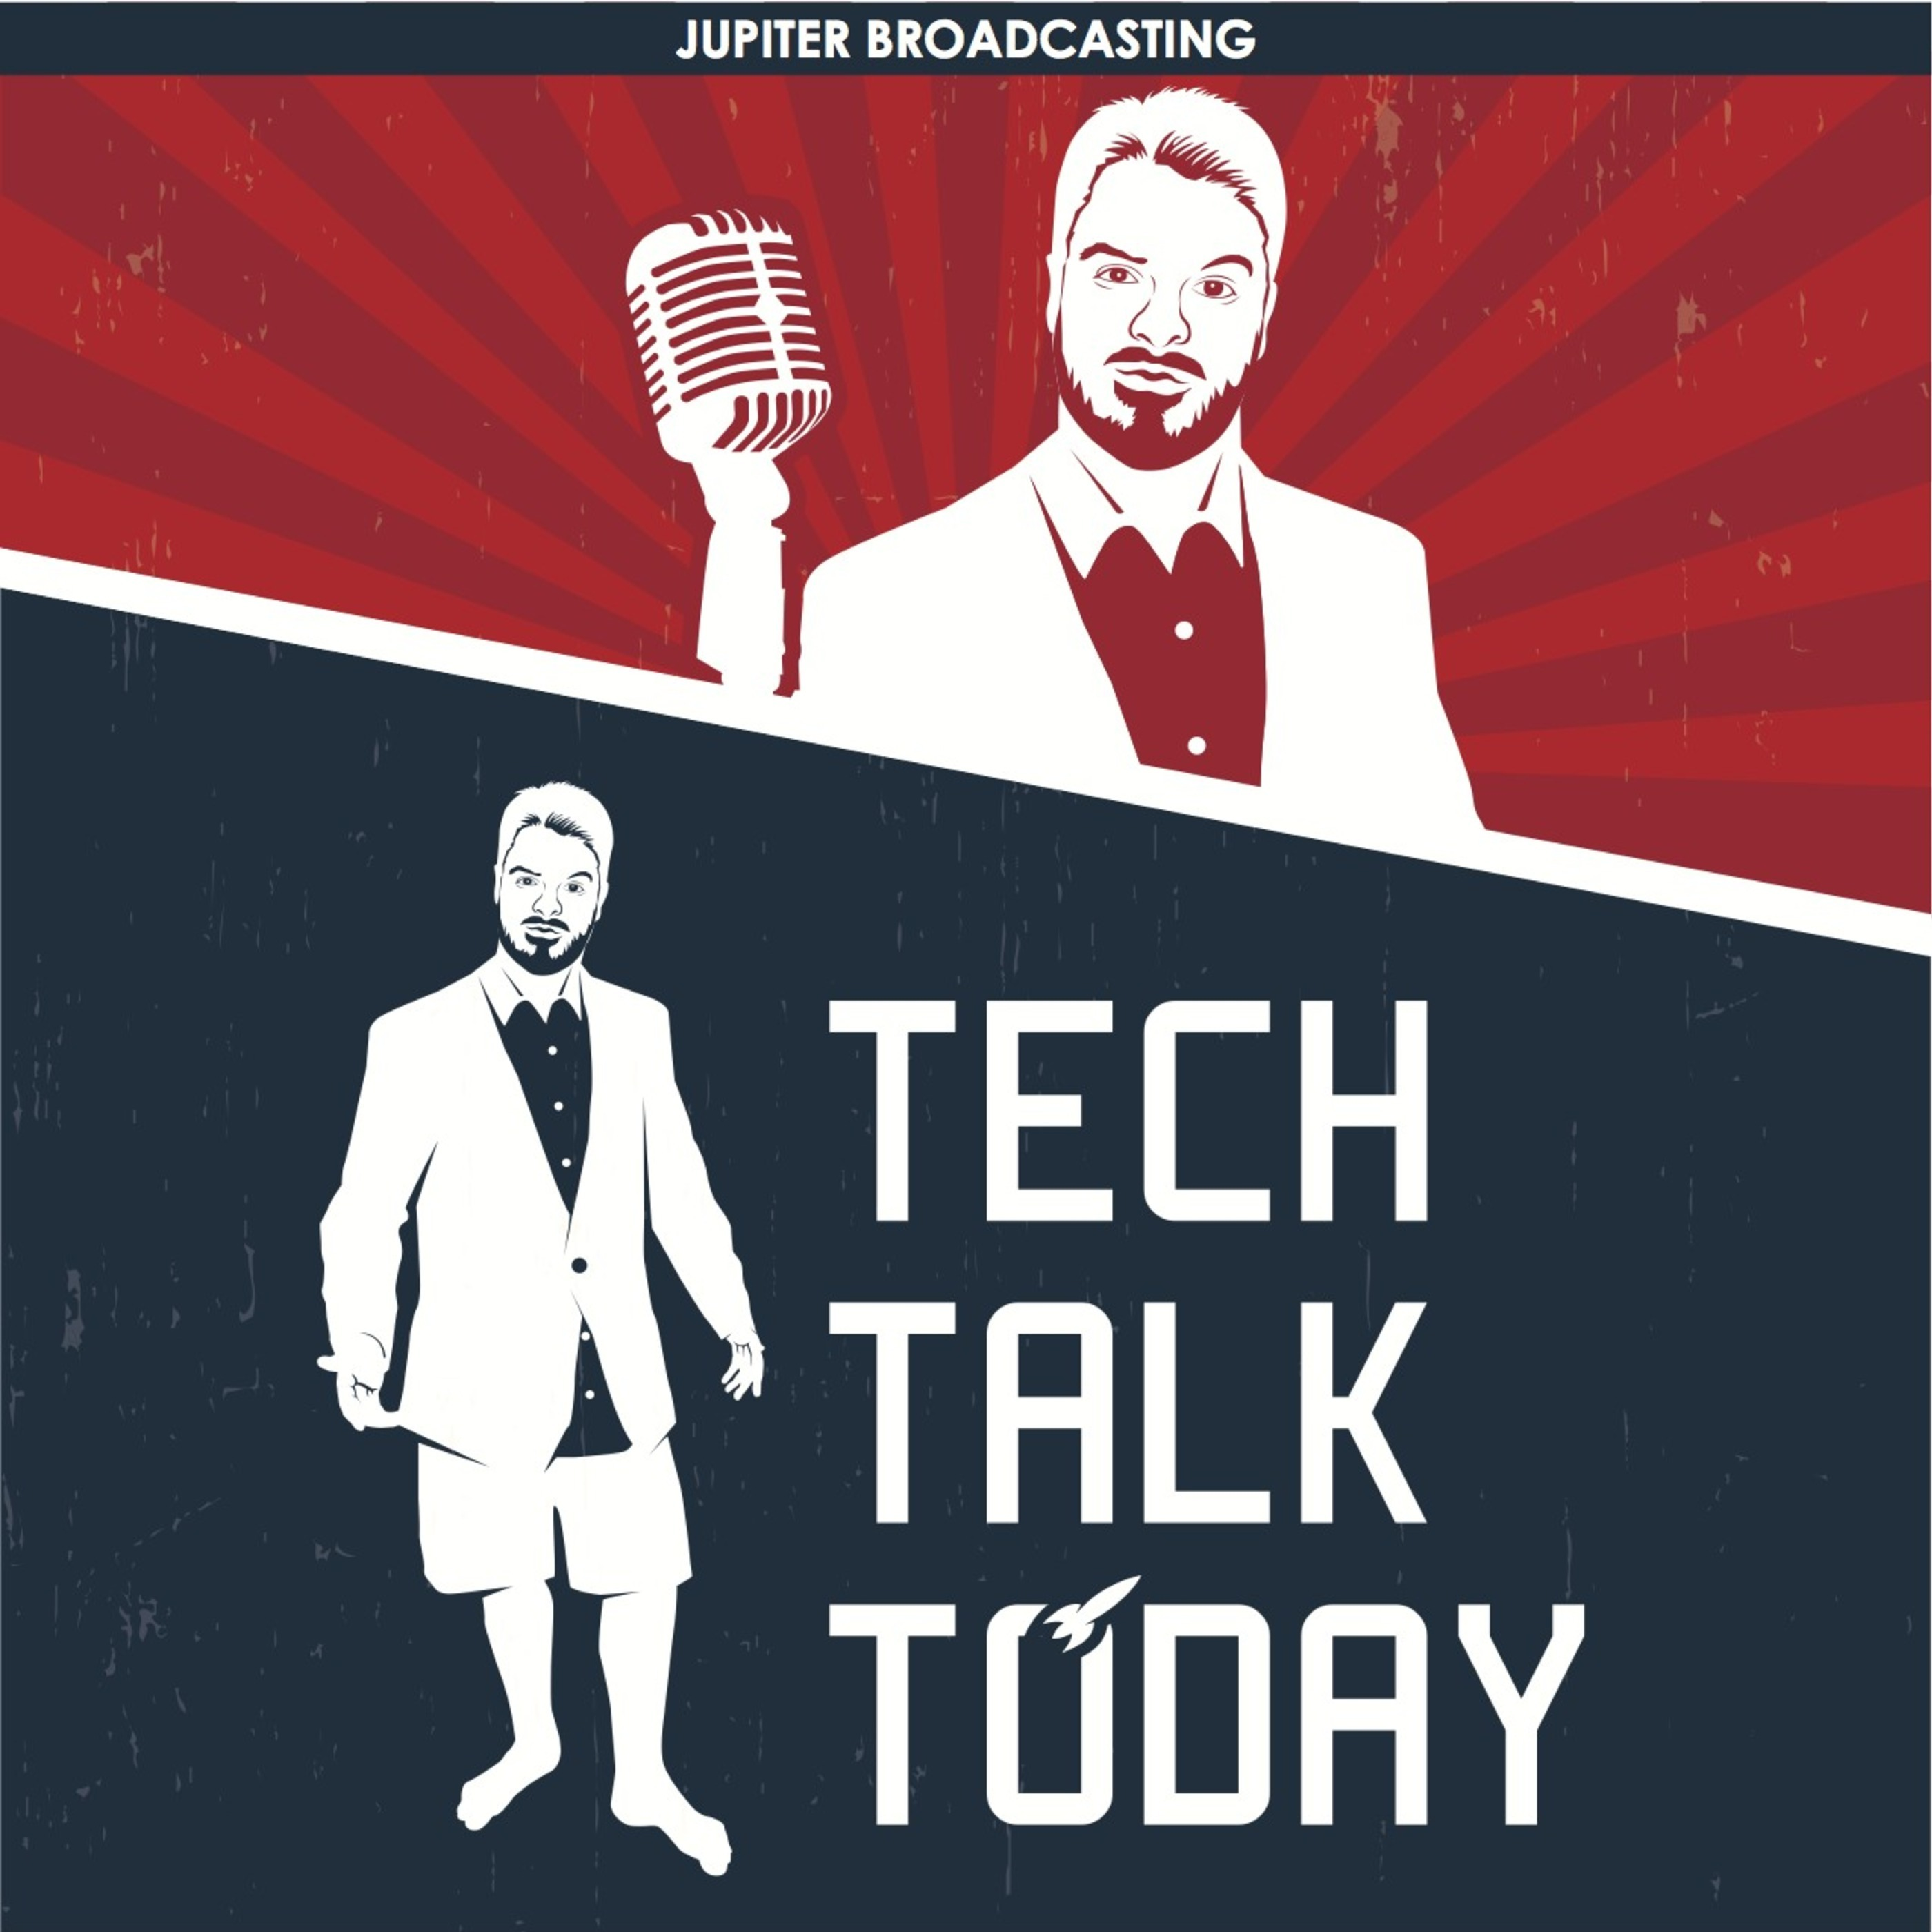 Episode 18: Windows 10 Bureaucrat Edition | Tech Talk Today 171